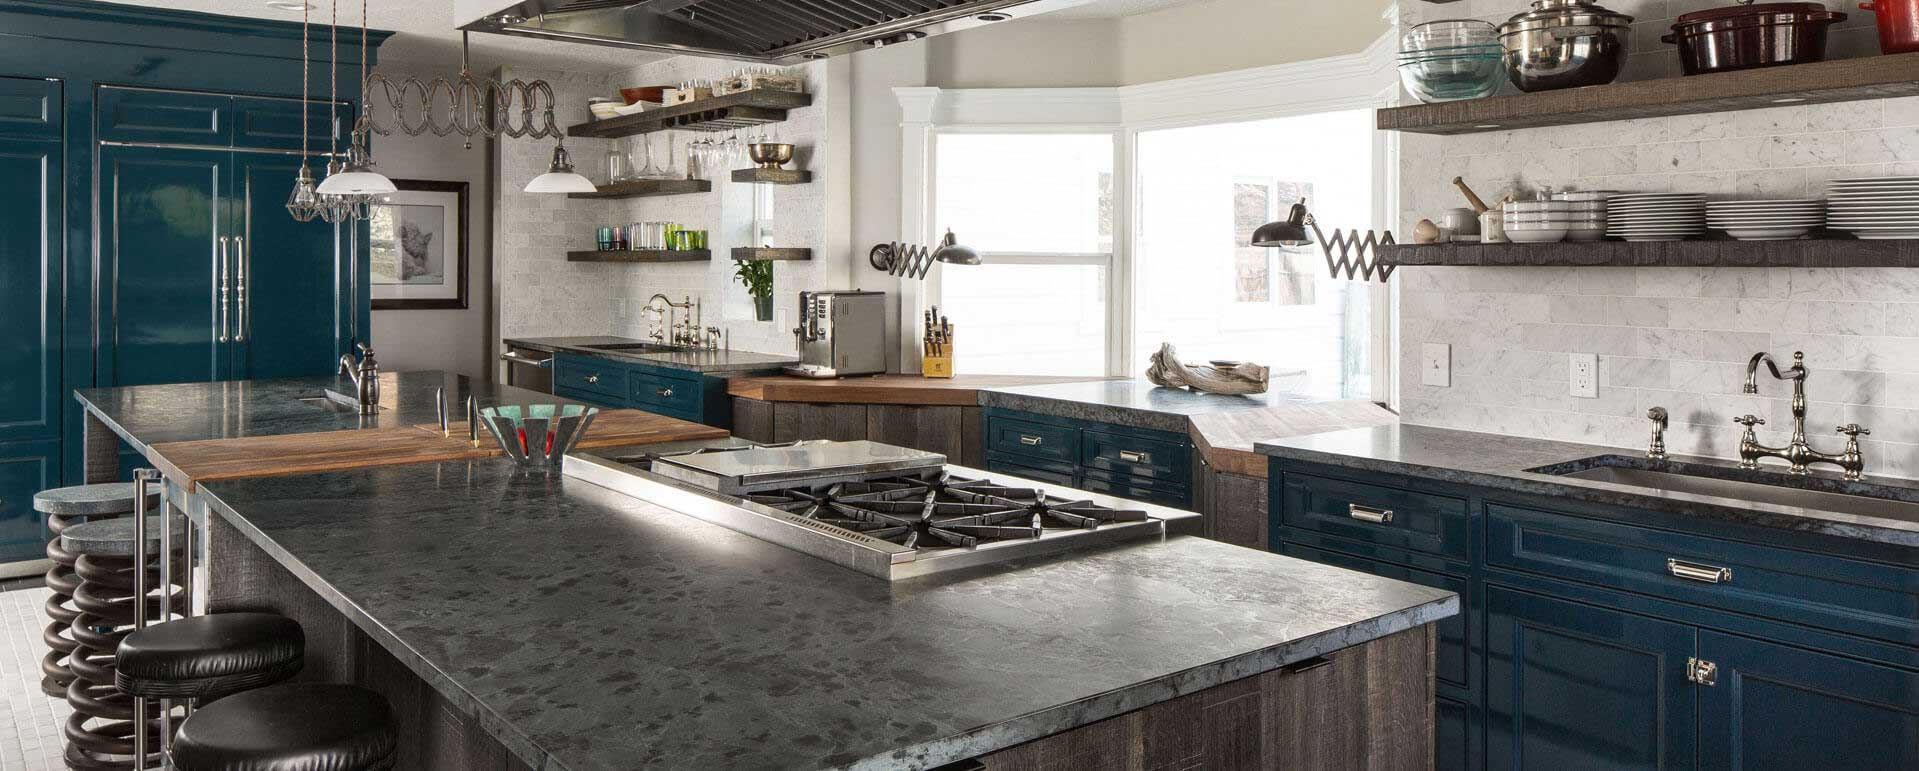 Bedrock Quartz | Countertops Store | Granite, Quartz